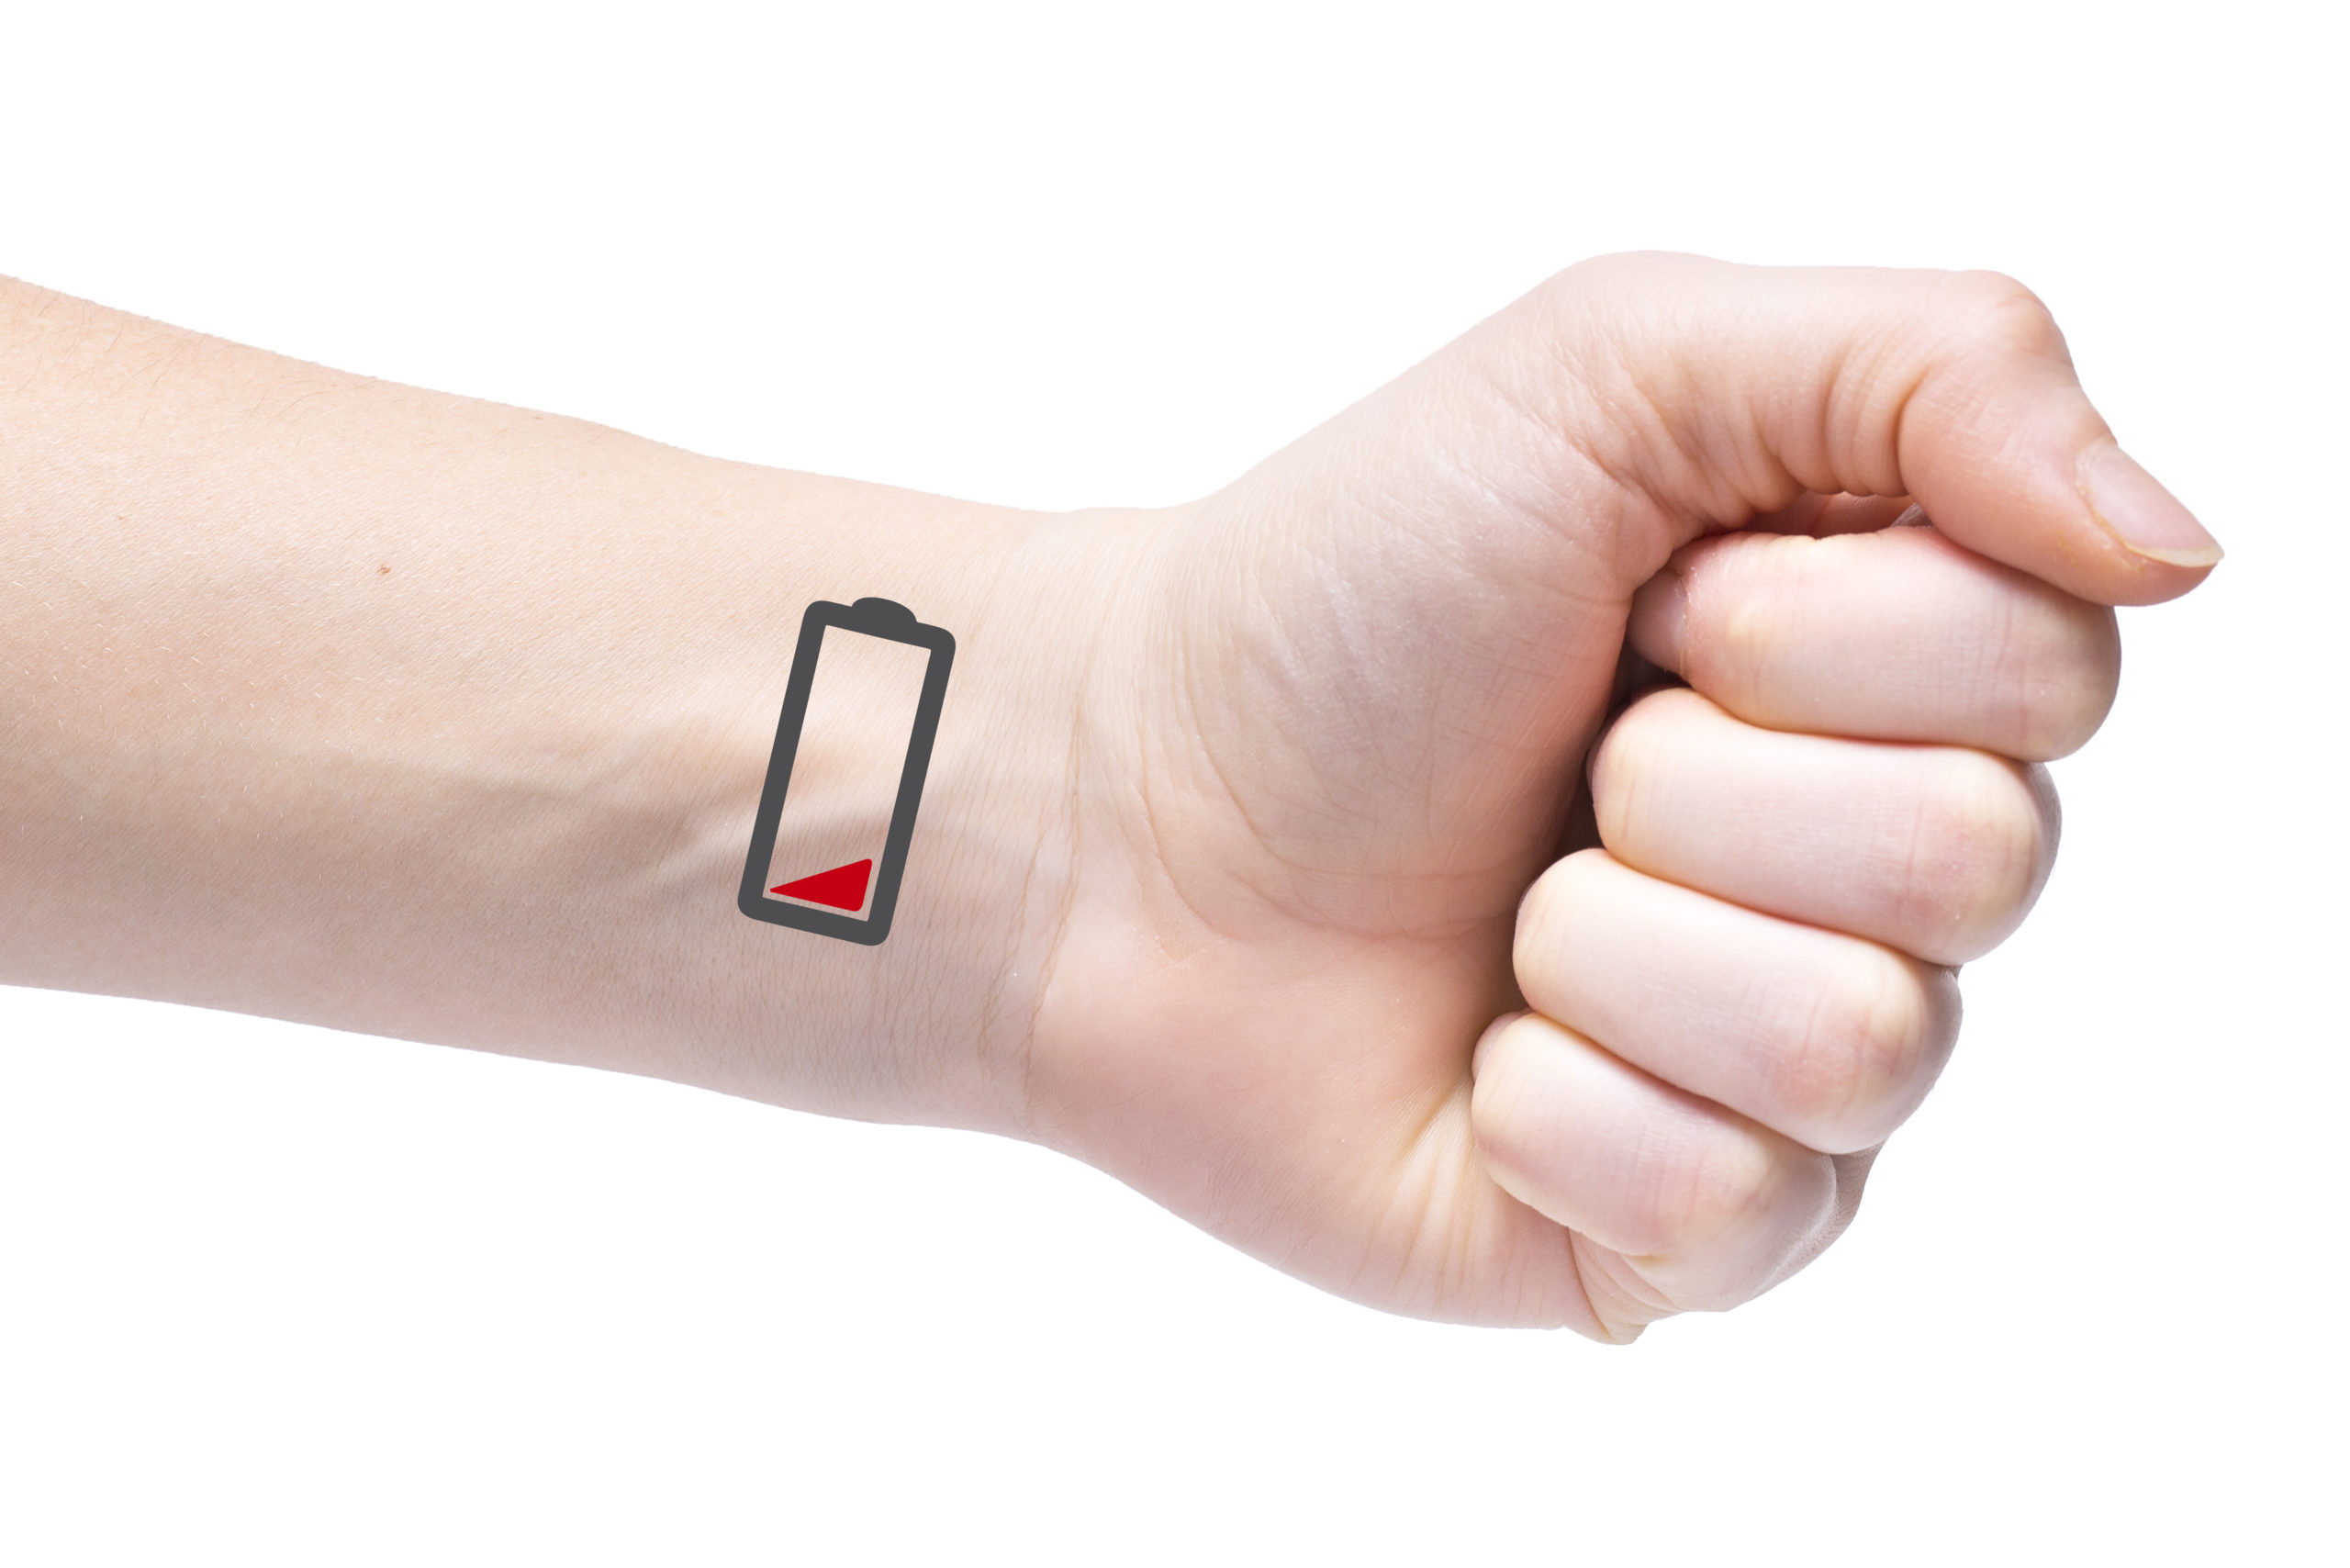 arm with low battery on the wrist